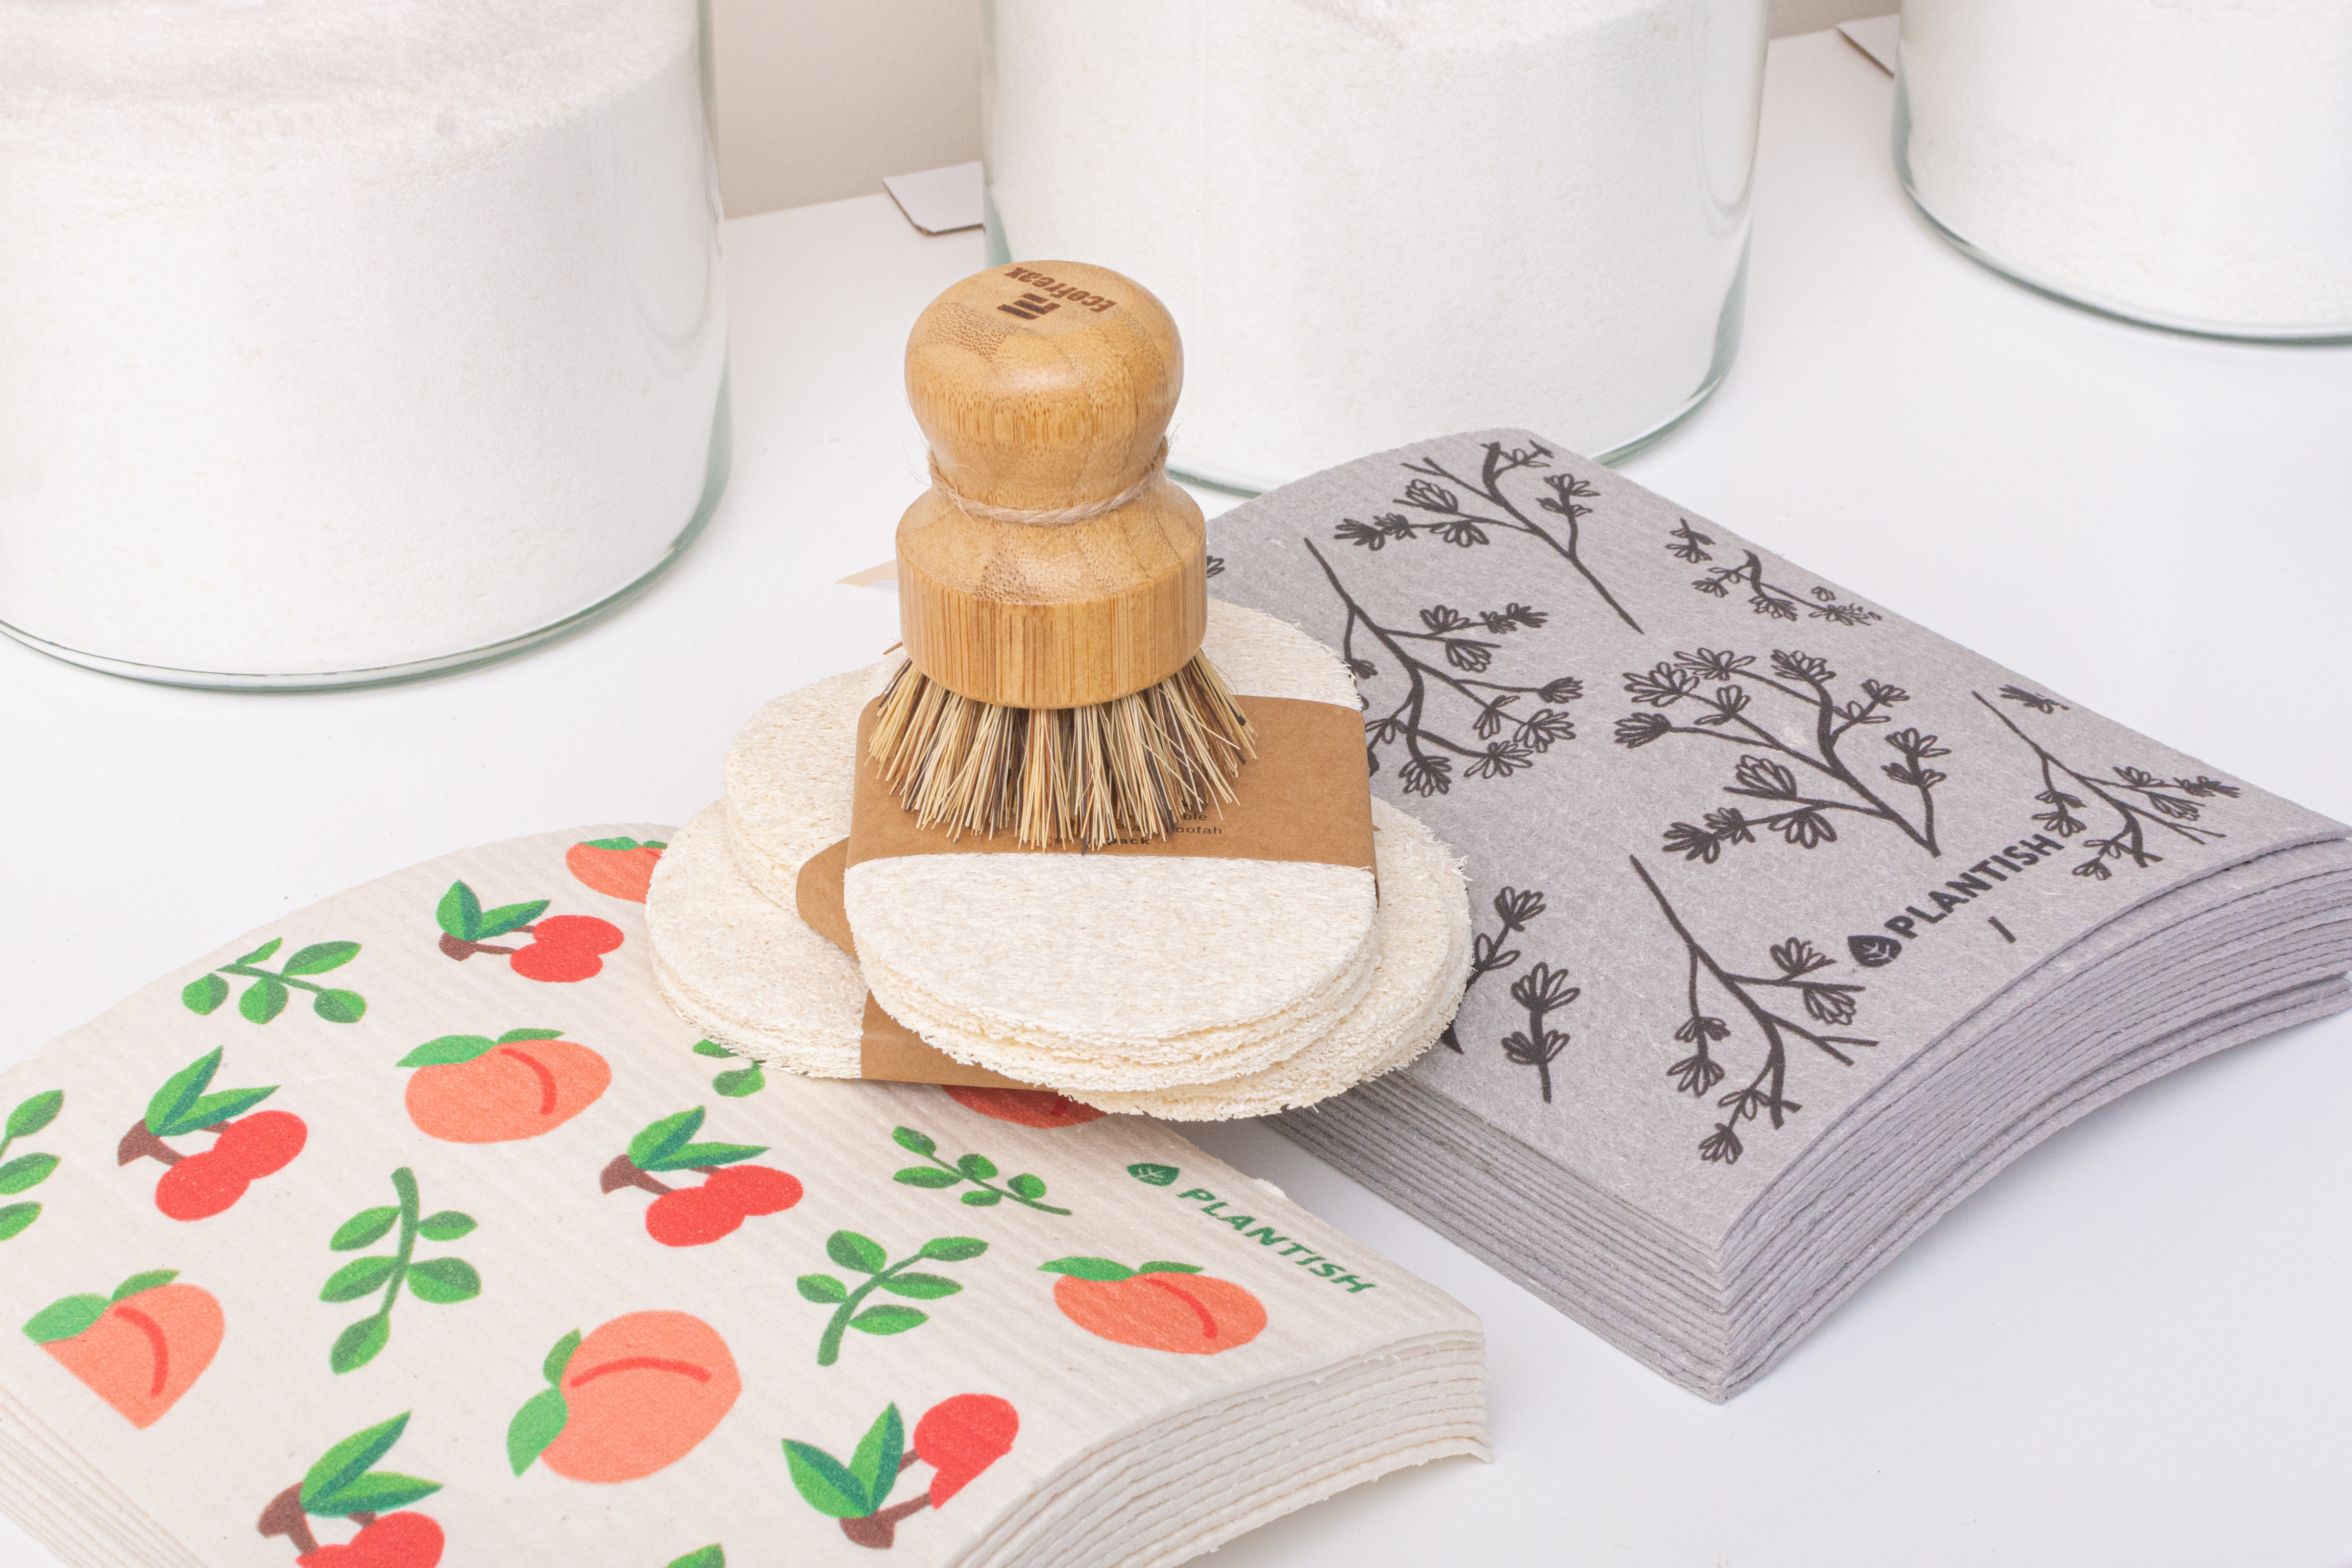 Dish brush and swedish towels. Staged photography.